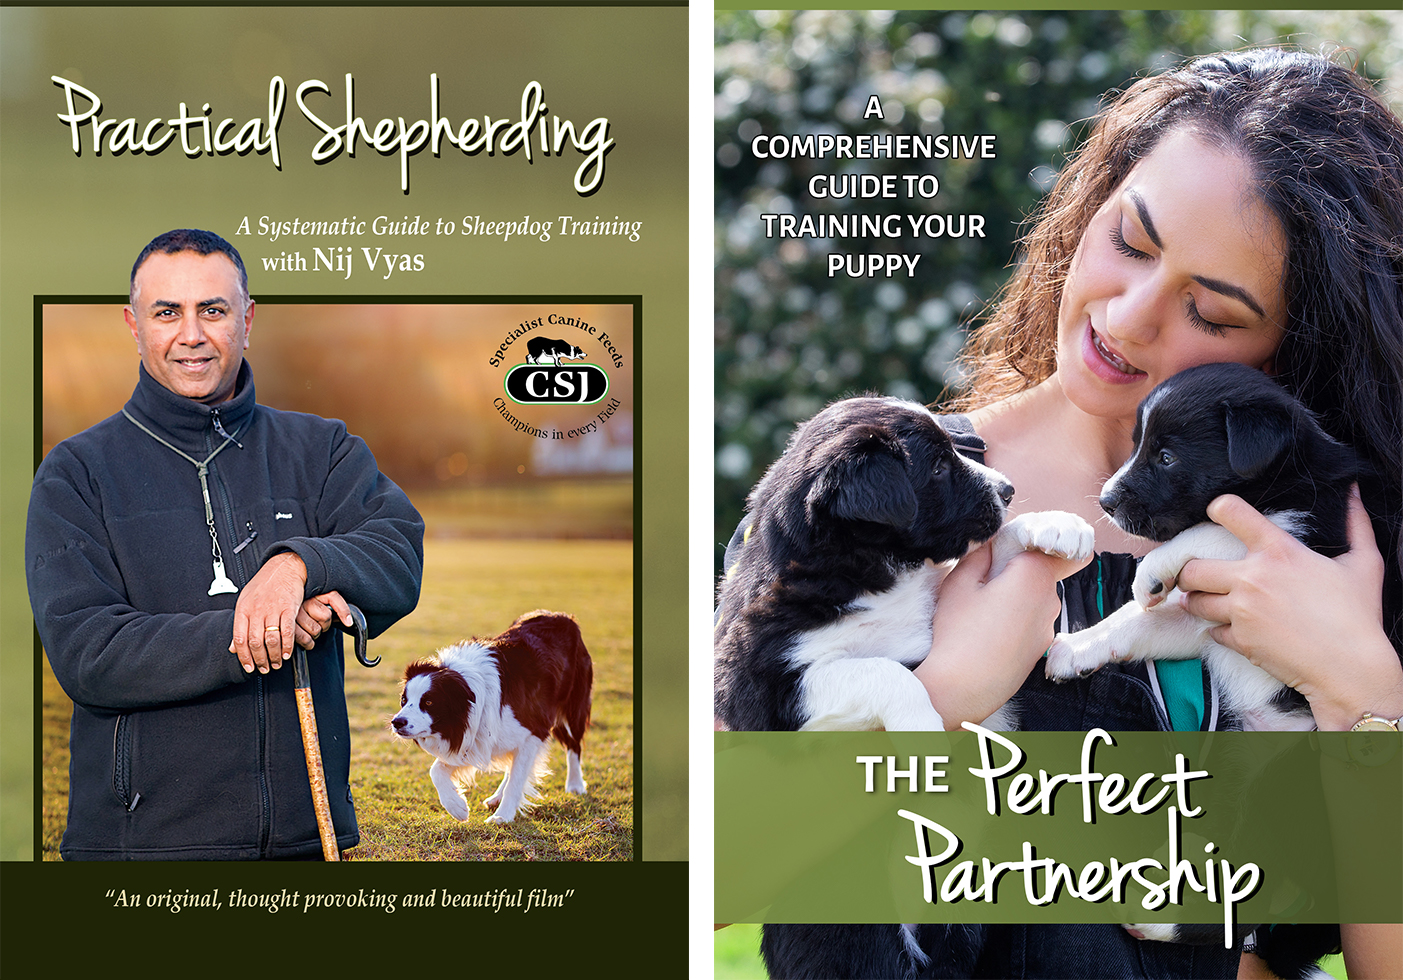 New - Online Sheepdog Training Courses